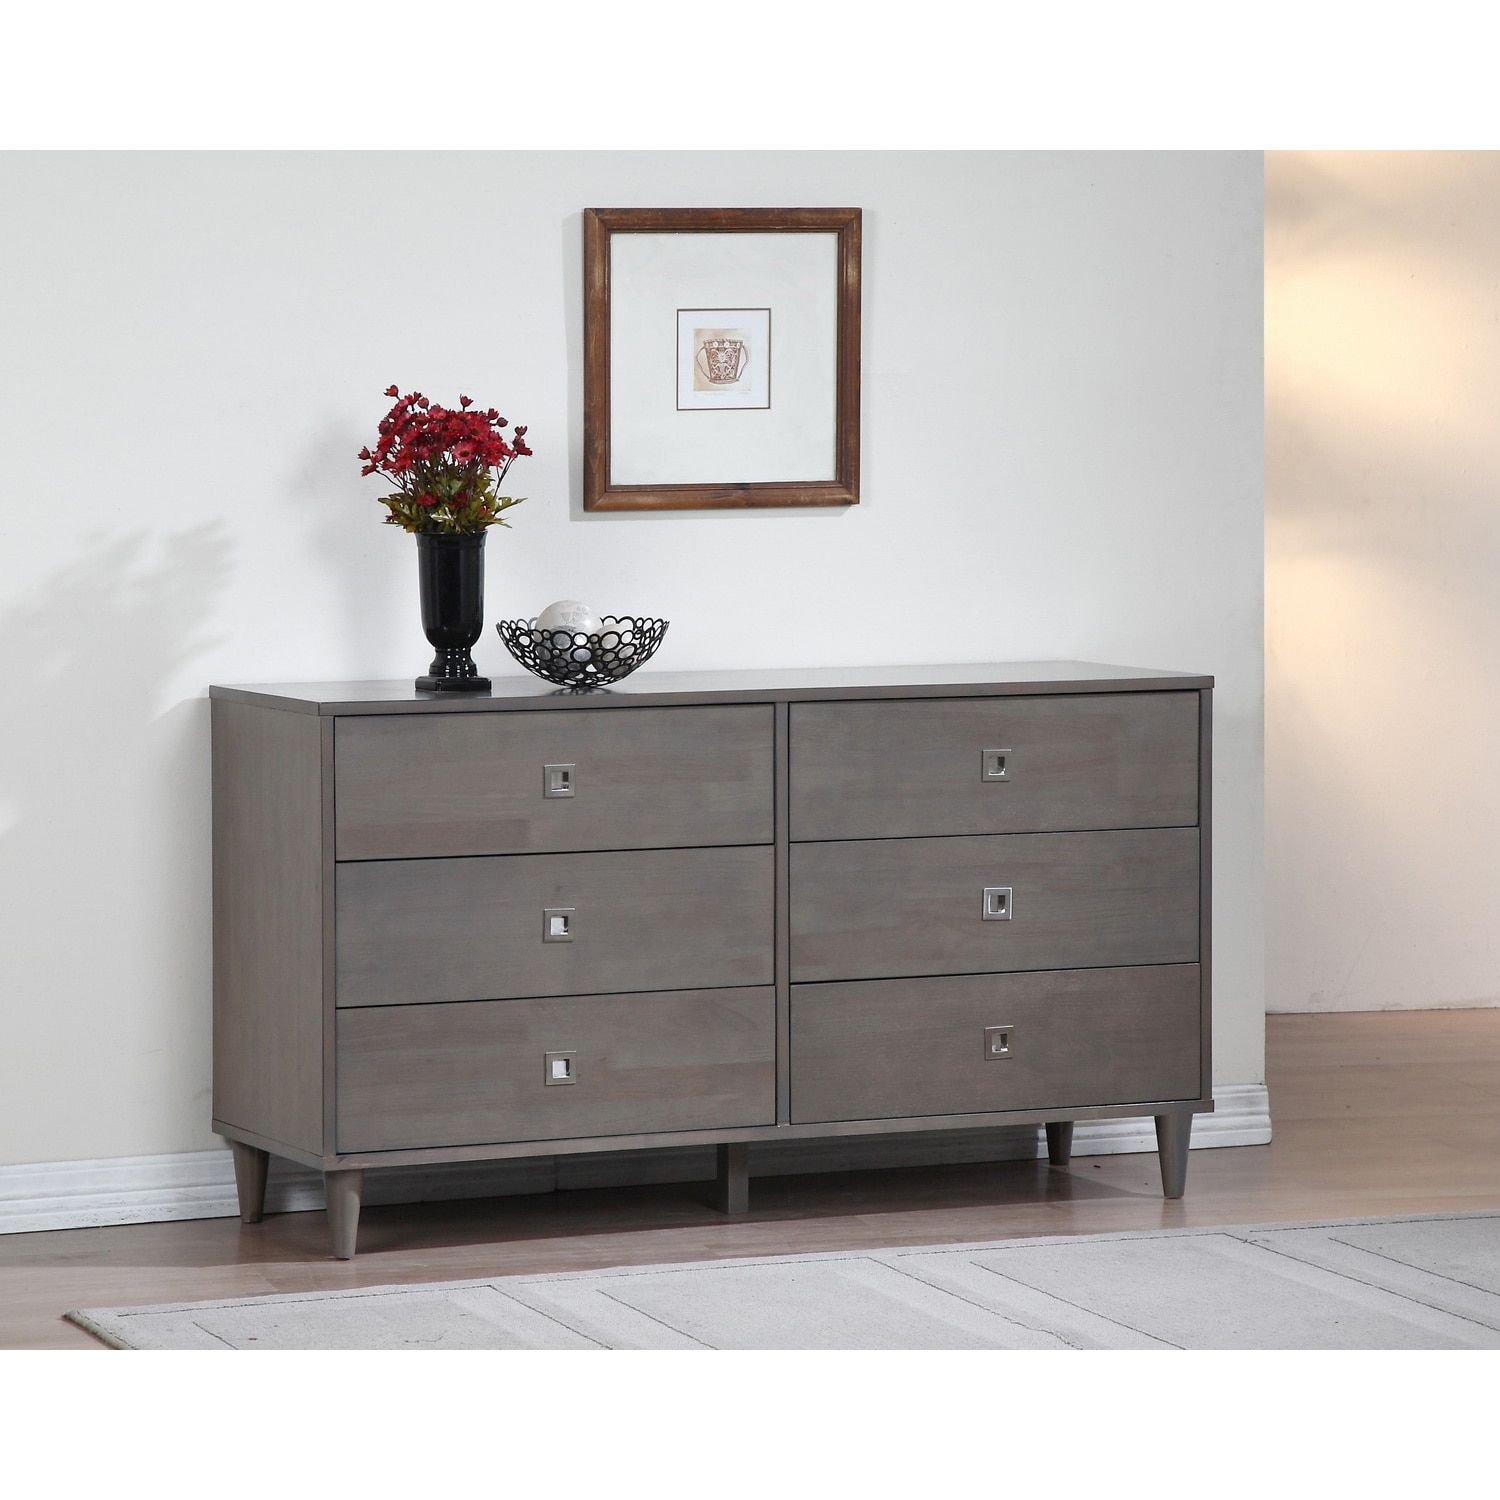 Alma 8 Drawer Chest Light Grey By Interlude Home Modern Dresser Drawers Exclusive Furniture [ 1344 x 1440 Pixel ]